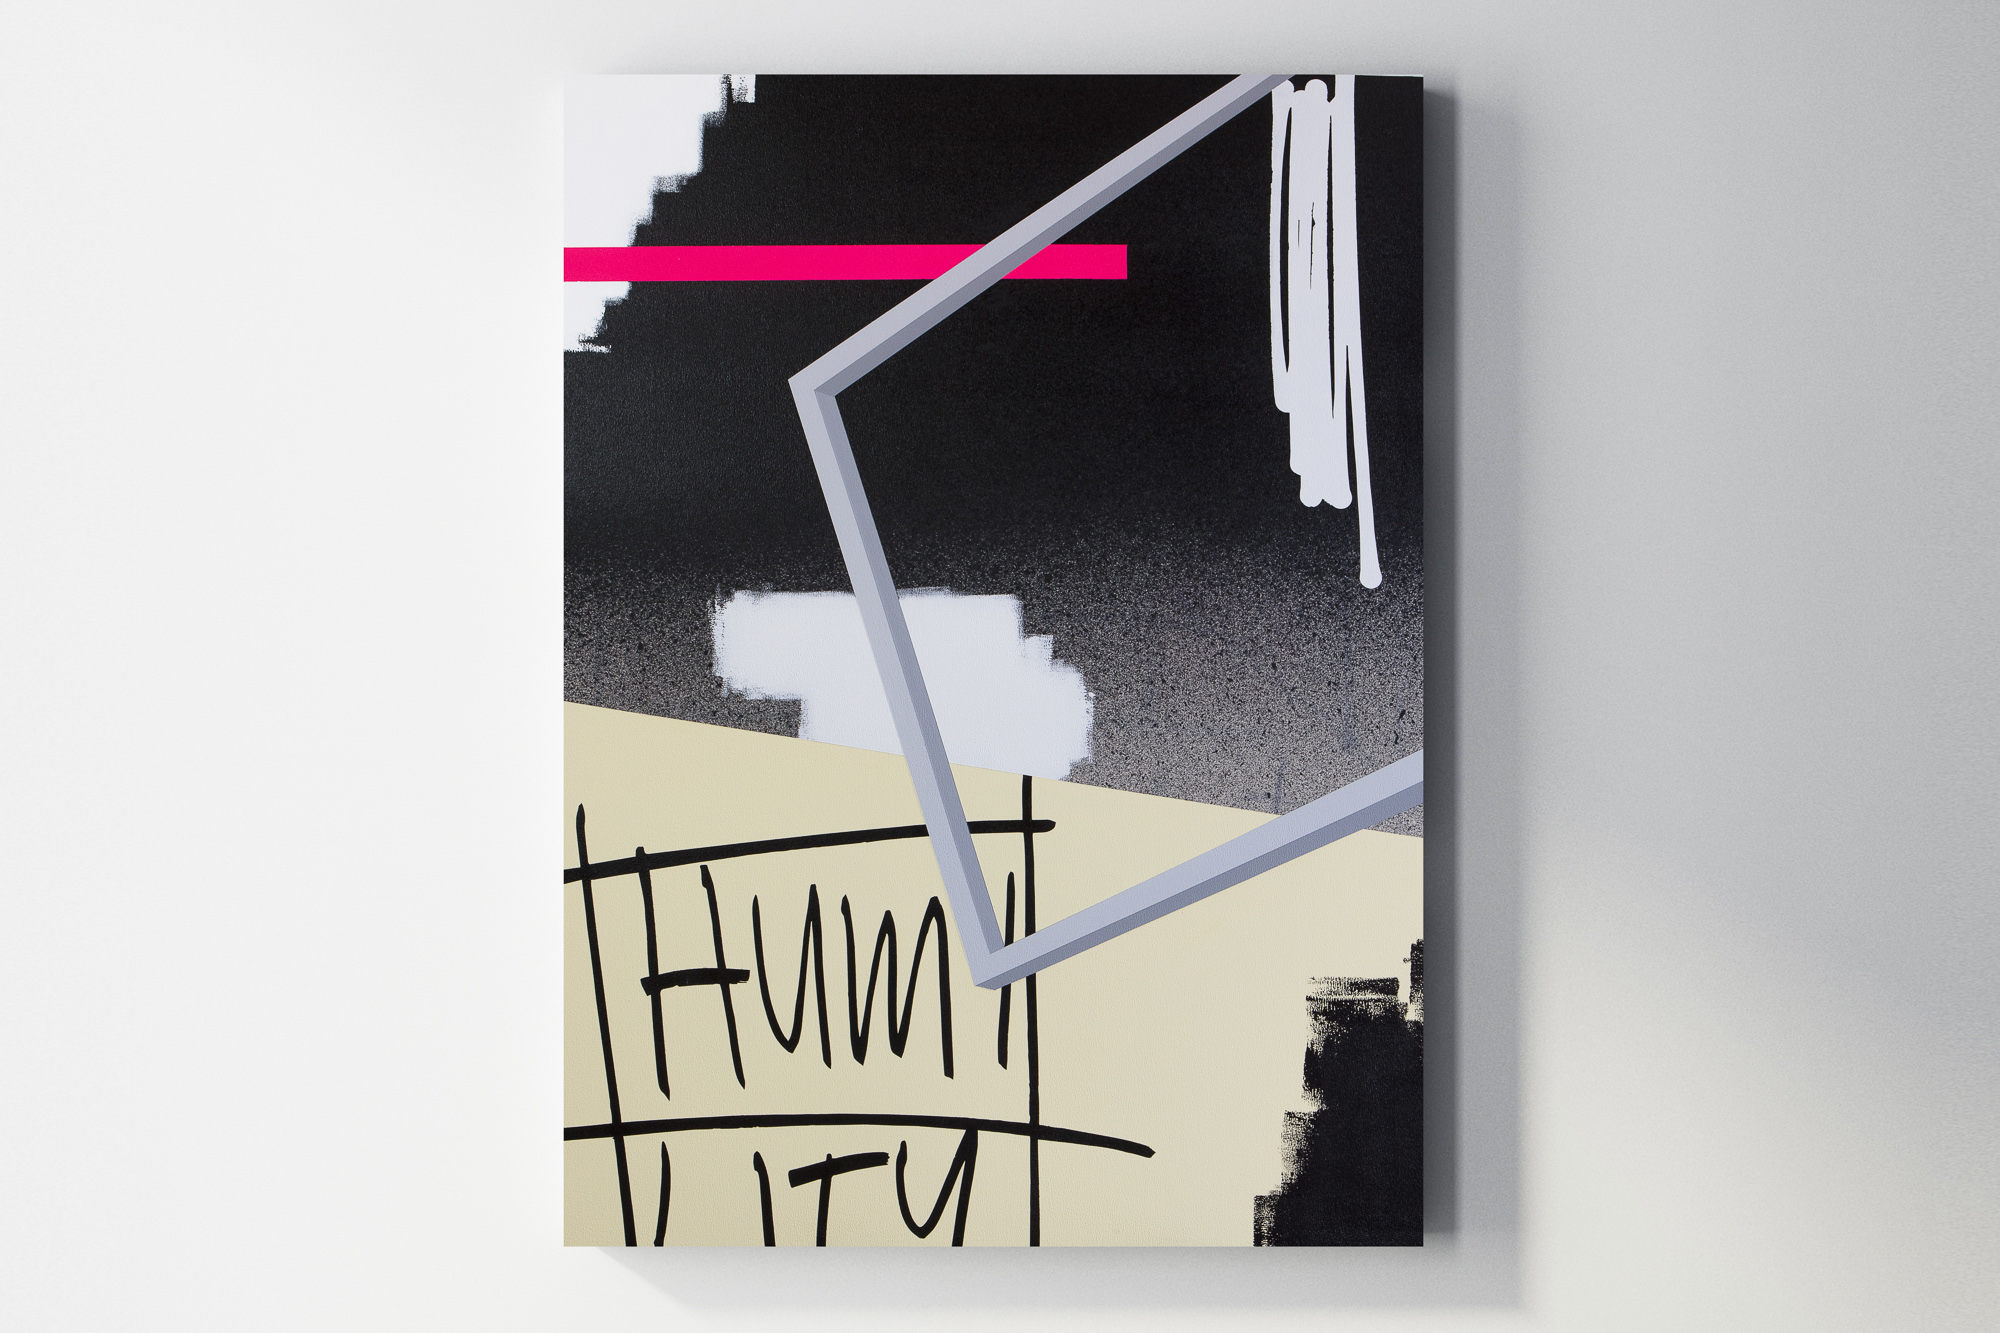 Jeremy Brown & Adam Podber  Humility  acrylic, aerosol, and ink on canvas  36 x 48 inches JBR 152G